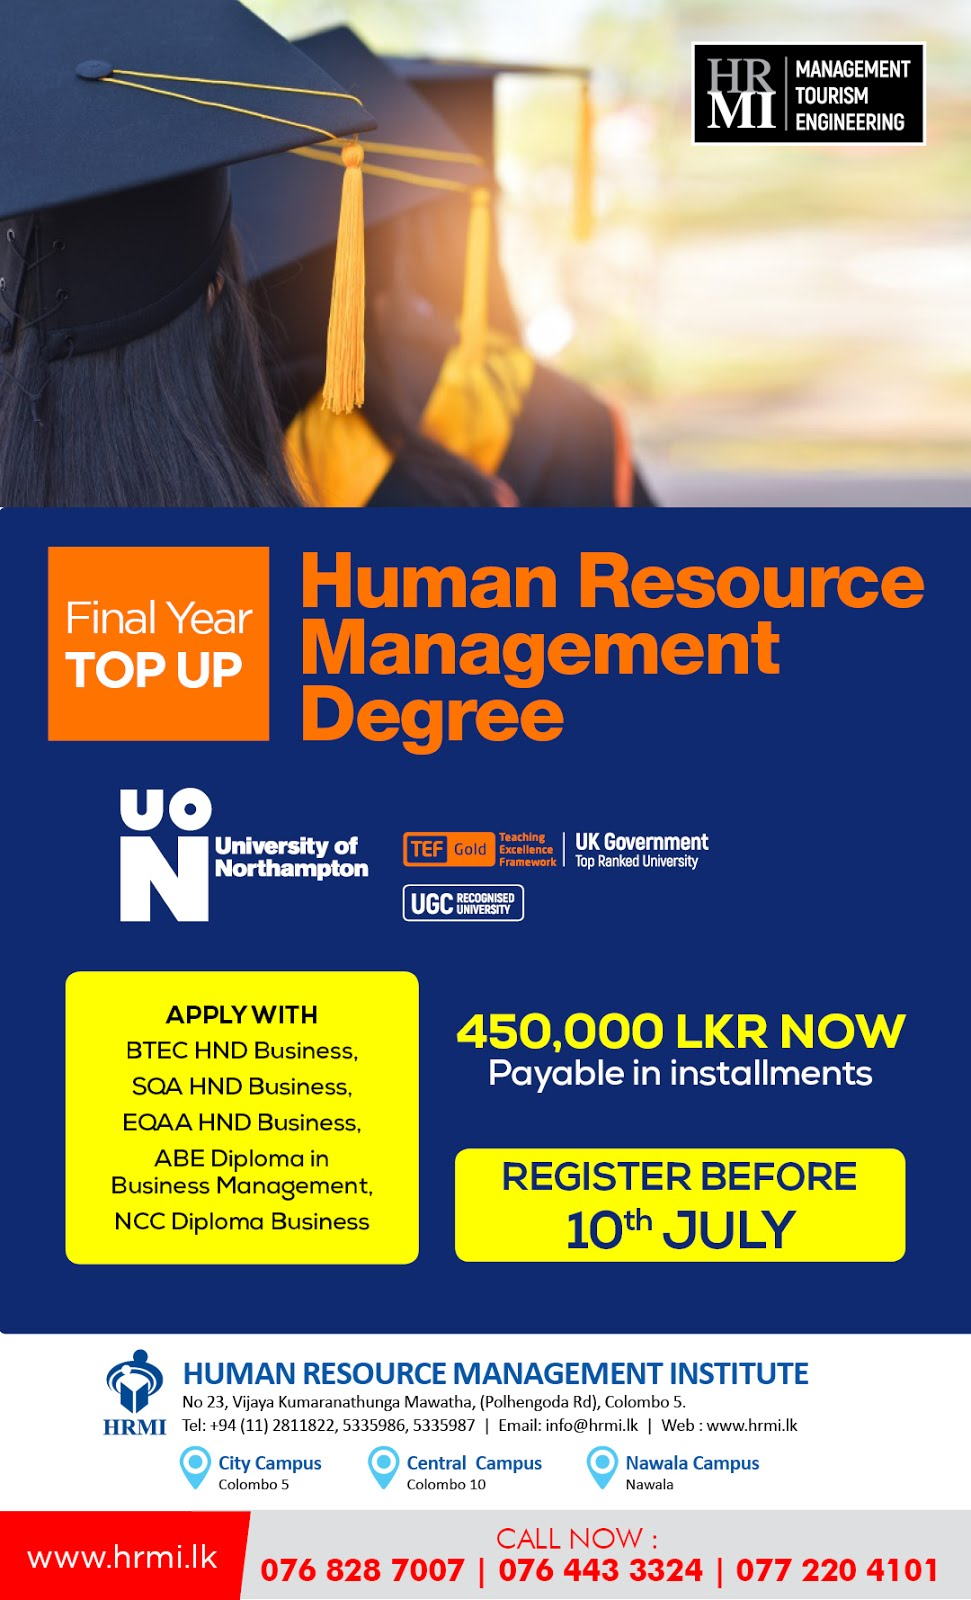 https://www.hrmi.lk/index.php/degree-hnd/ba-hons-hrm-degree-final-year-awarded-by-university-of-northampton-uk